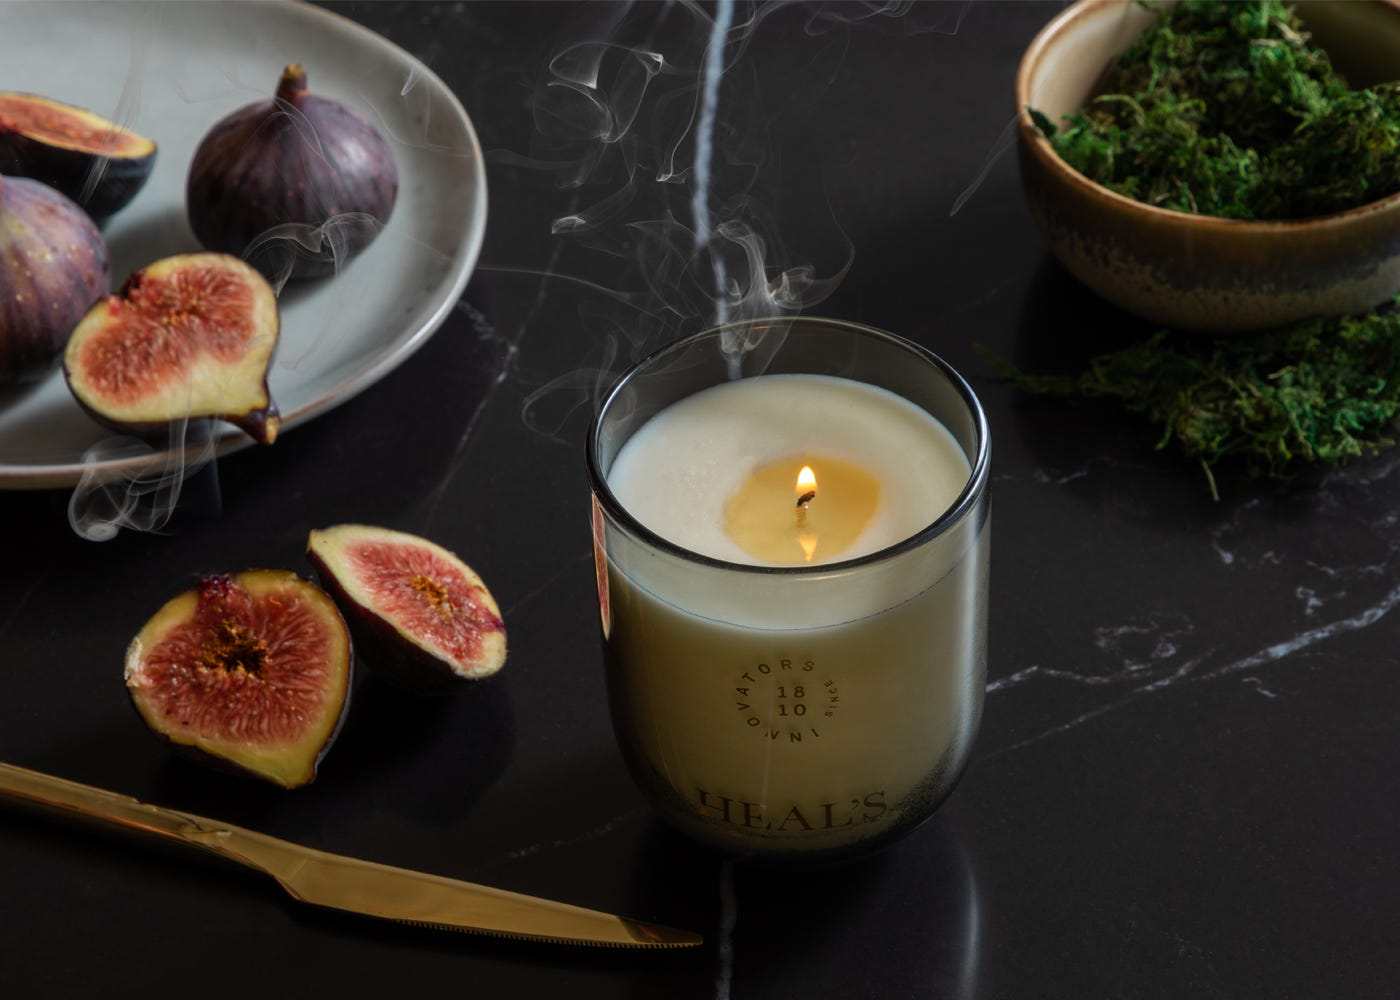 uplifting notes of citrus and fig leaf that enliven an earthy base of moss and musk